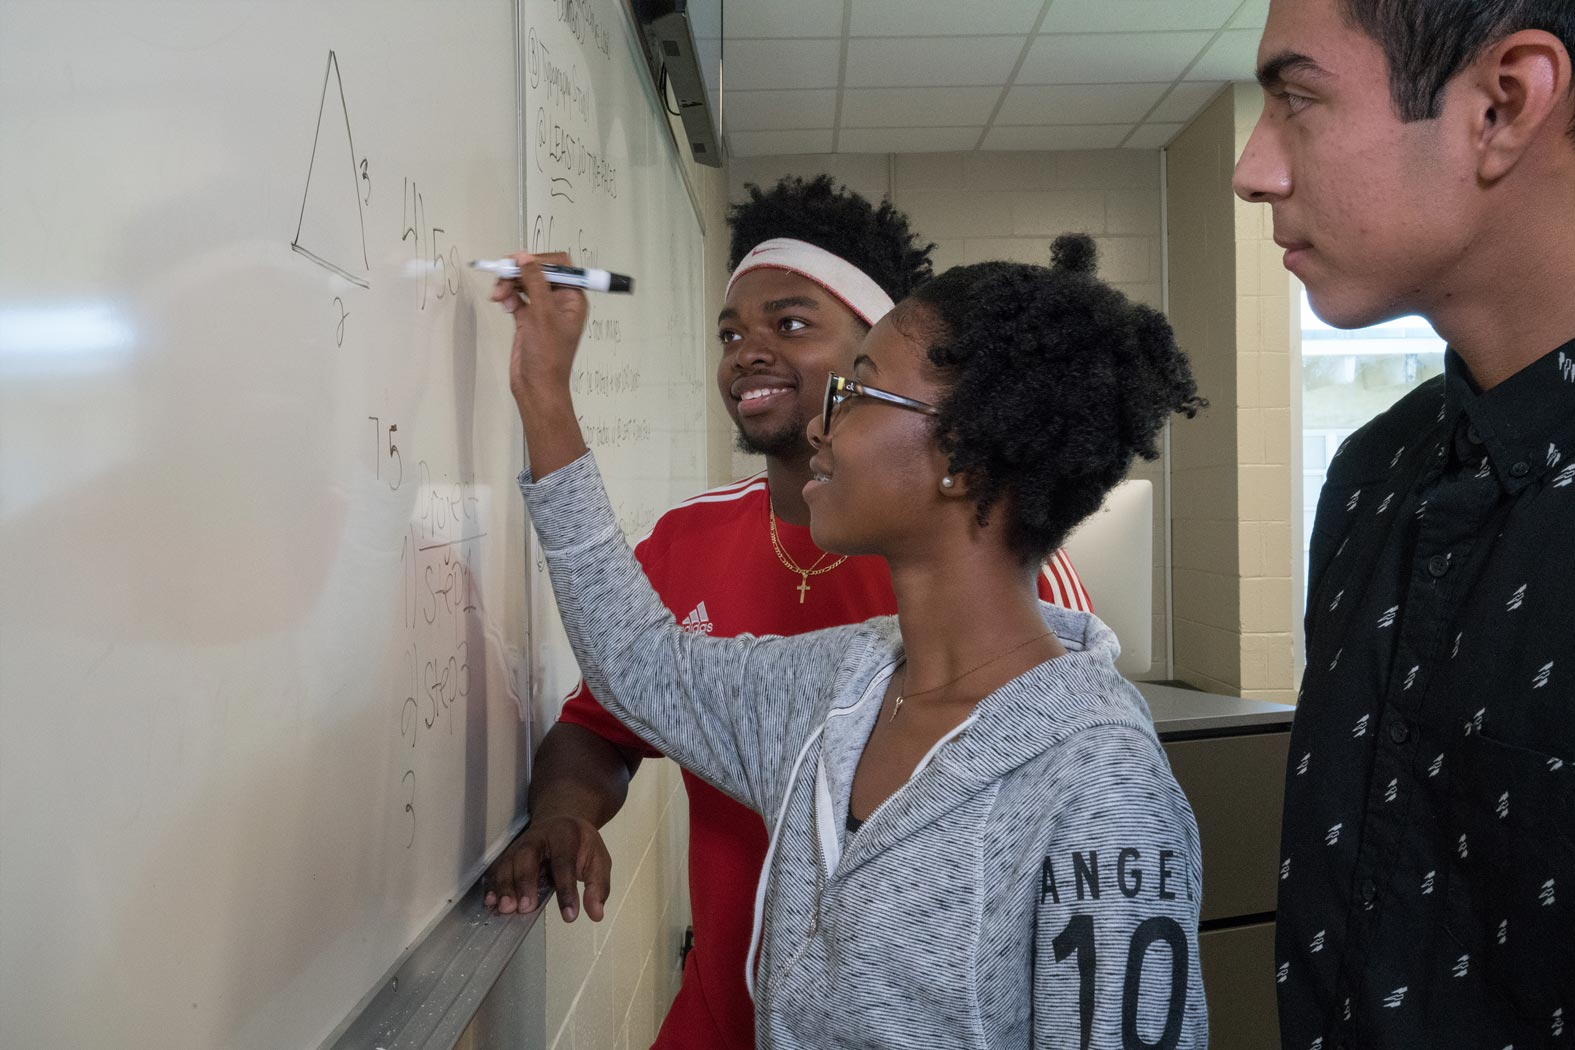 Trenholm Swift students practicing math on a whiteboard